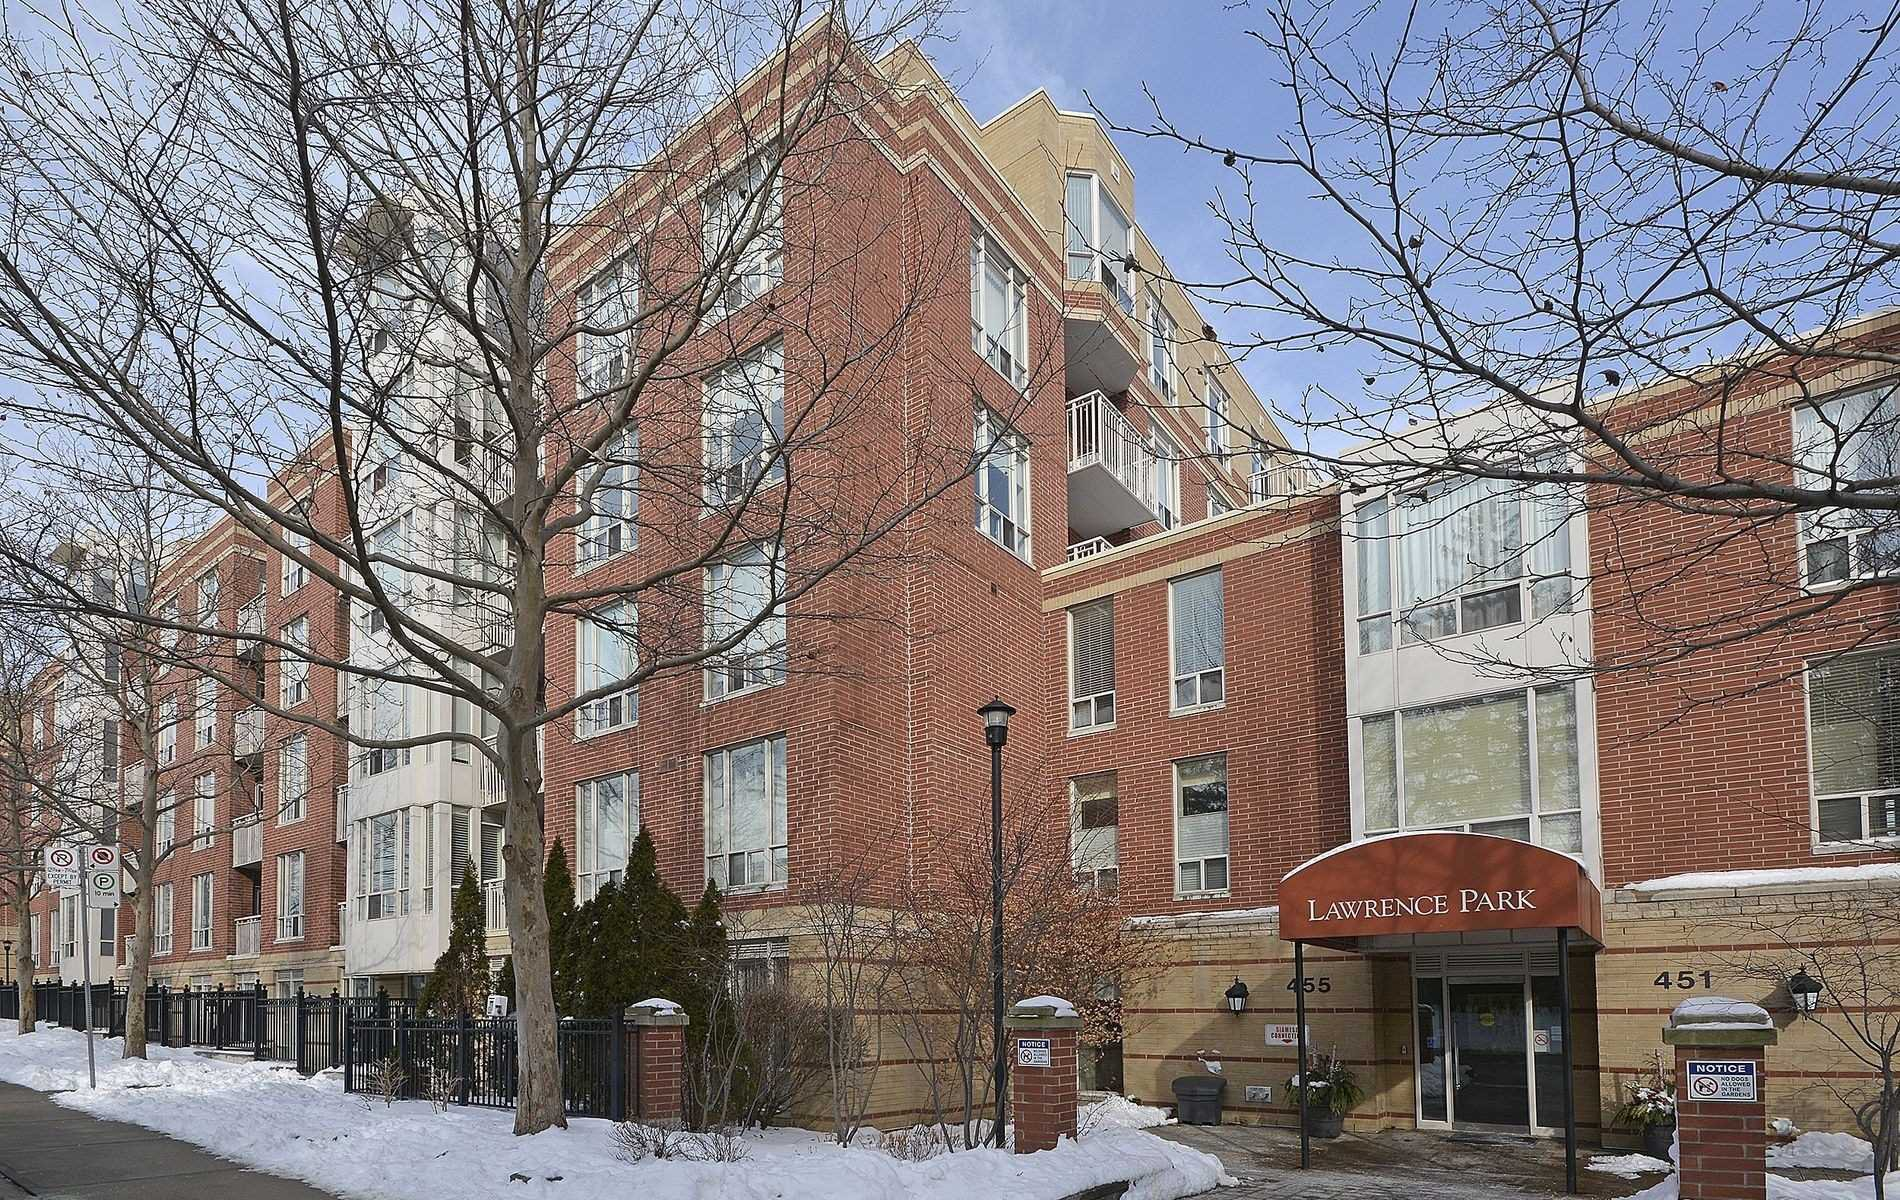 Main Photo: 455 Rosewell Ave Unit #610 in Toronto: Lawrence Park South Condo for sale (Toronto C04)  : MLS®# C4678281